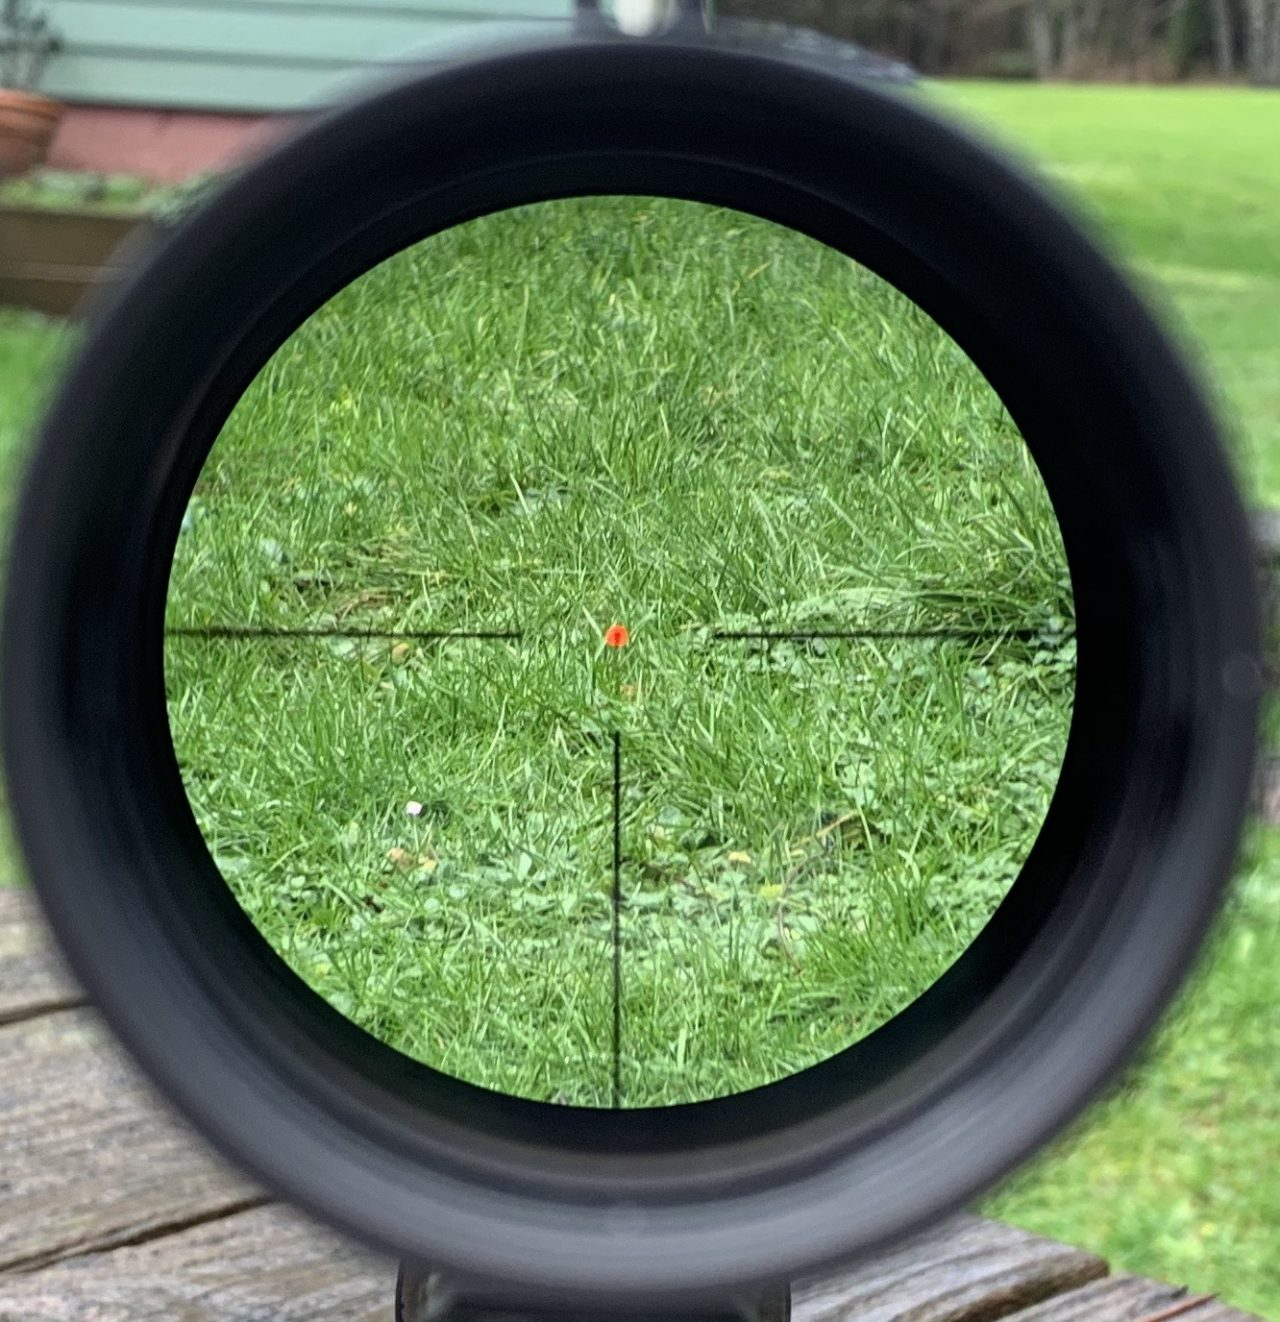 The bold crosshairs draw your eye to the reticle. The reticle is nice and bright on overcast days in the Pacific Northwest